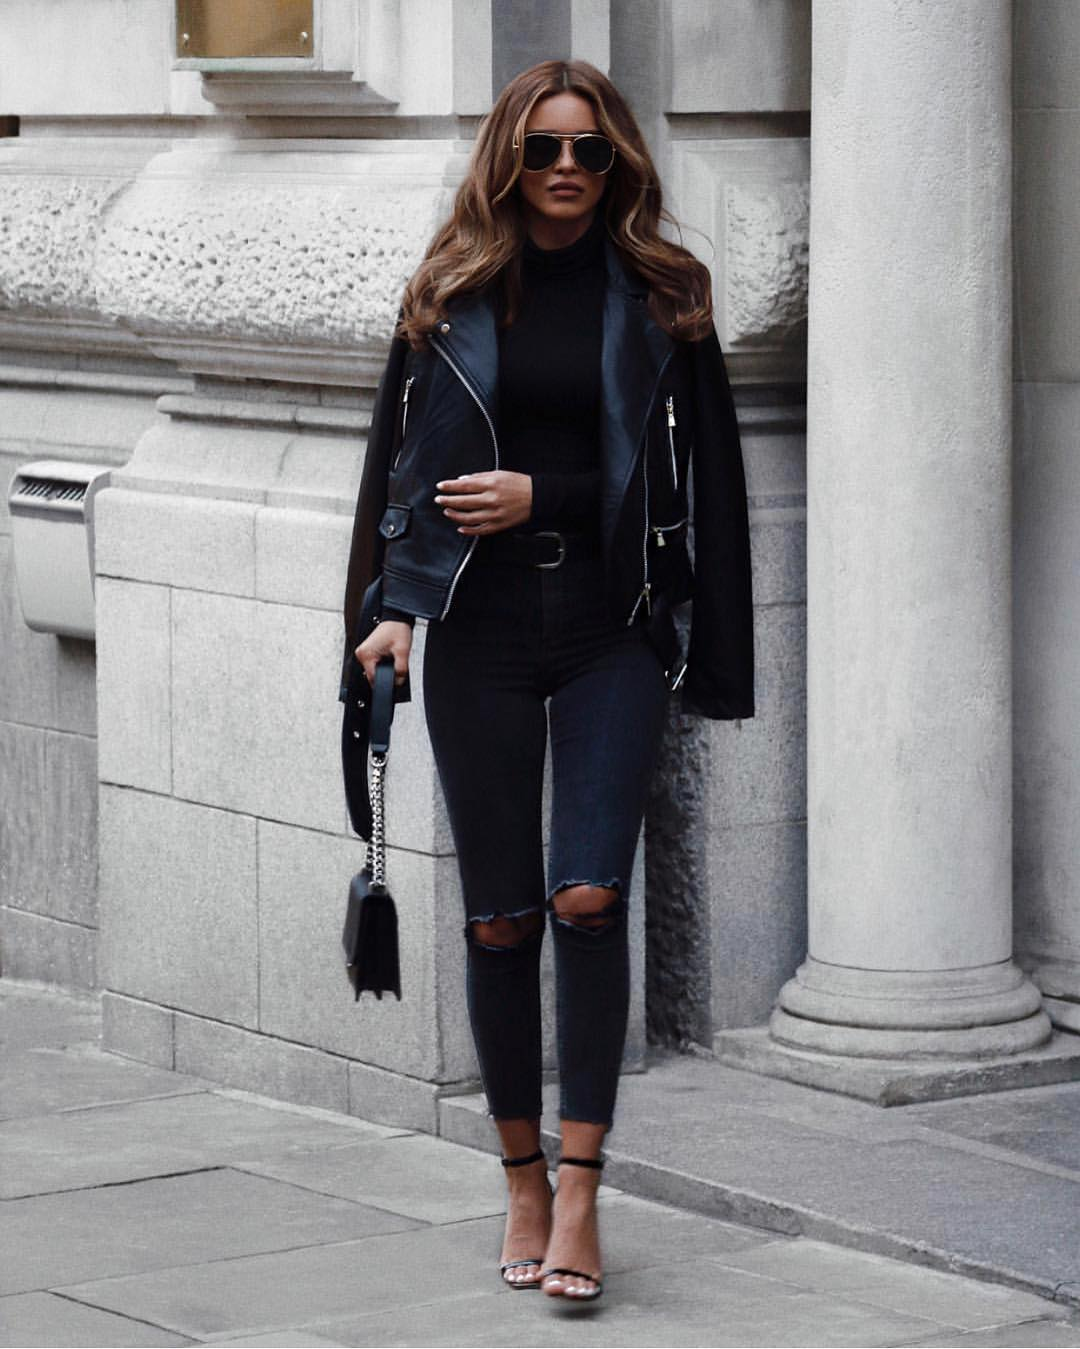 All Black Street Look: Leather Jacket, Bodysuit, Ripped Jeans And Sandals 2020